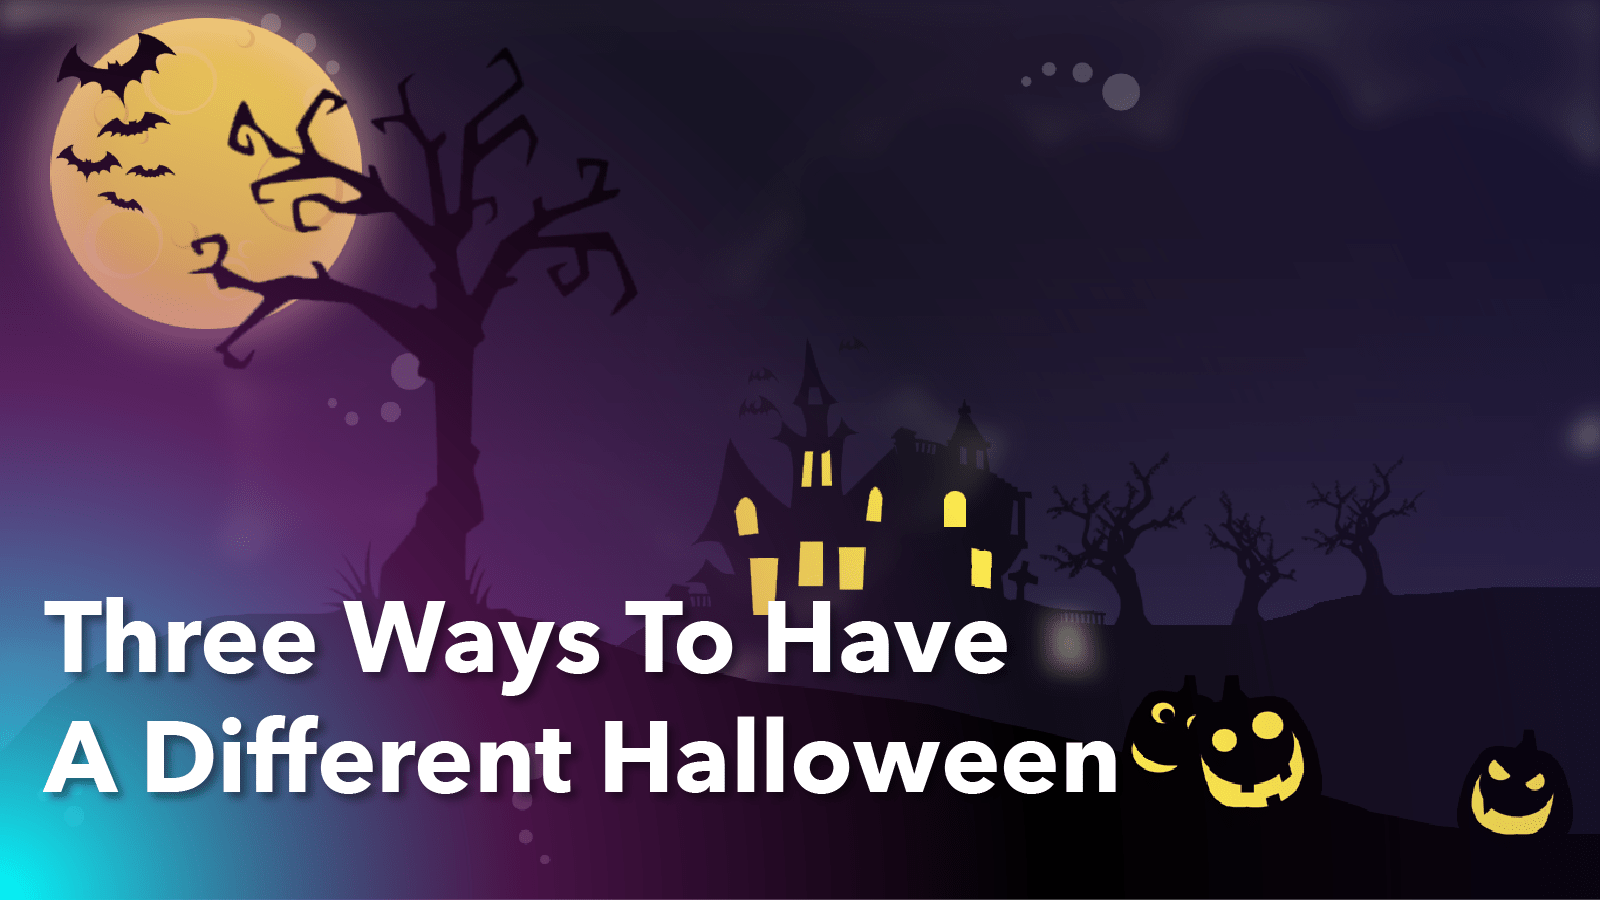 Three Ways to Have a Different Halloween